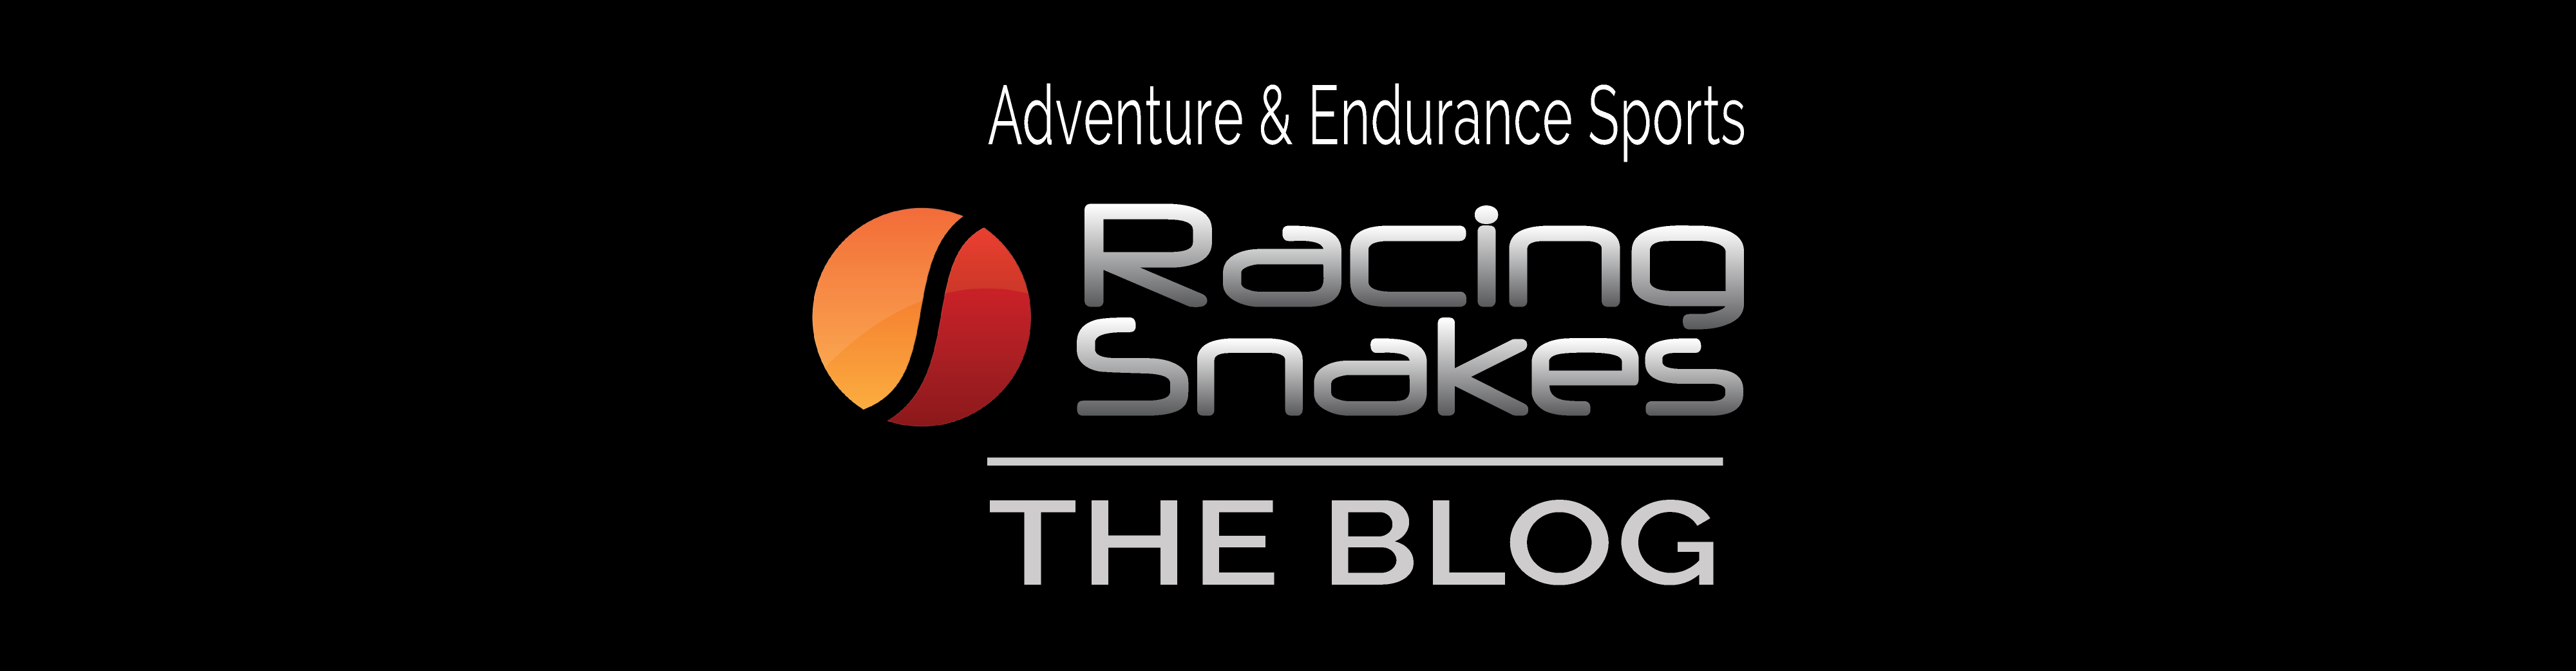 Adventure Race | Multisport | Mountain Marathons | Endurance Sports |  racingsnakes